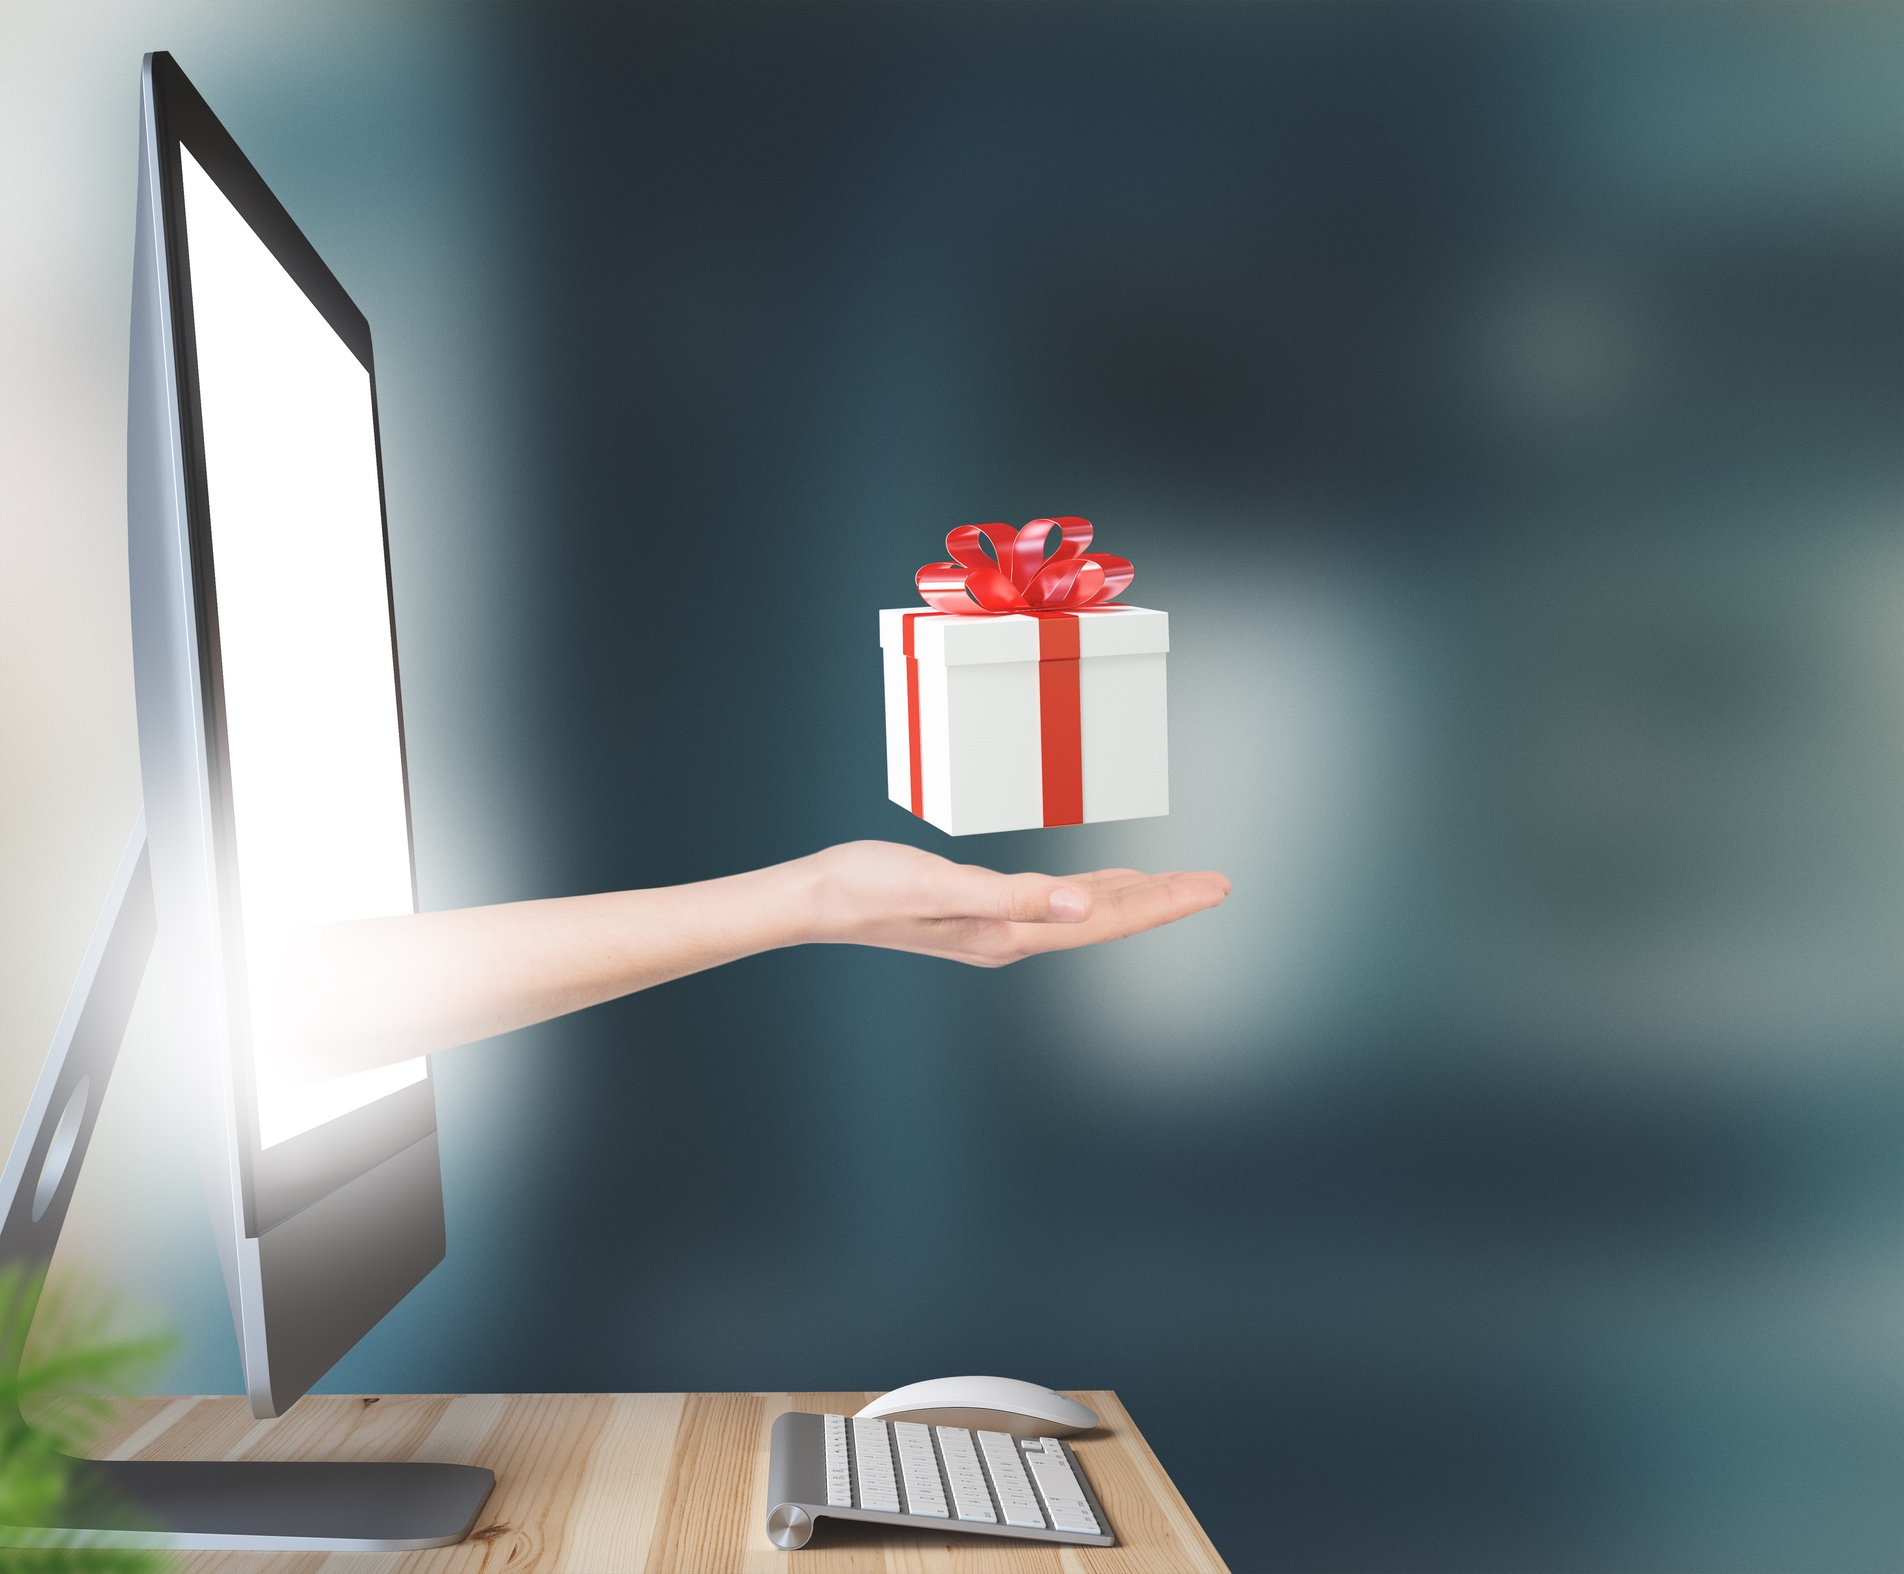 gdpr-gifts-iStock-880449936